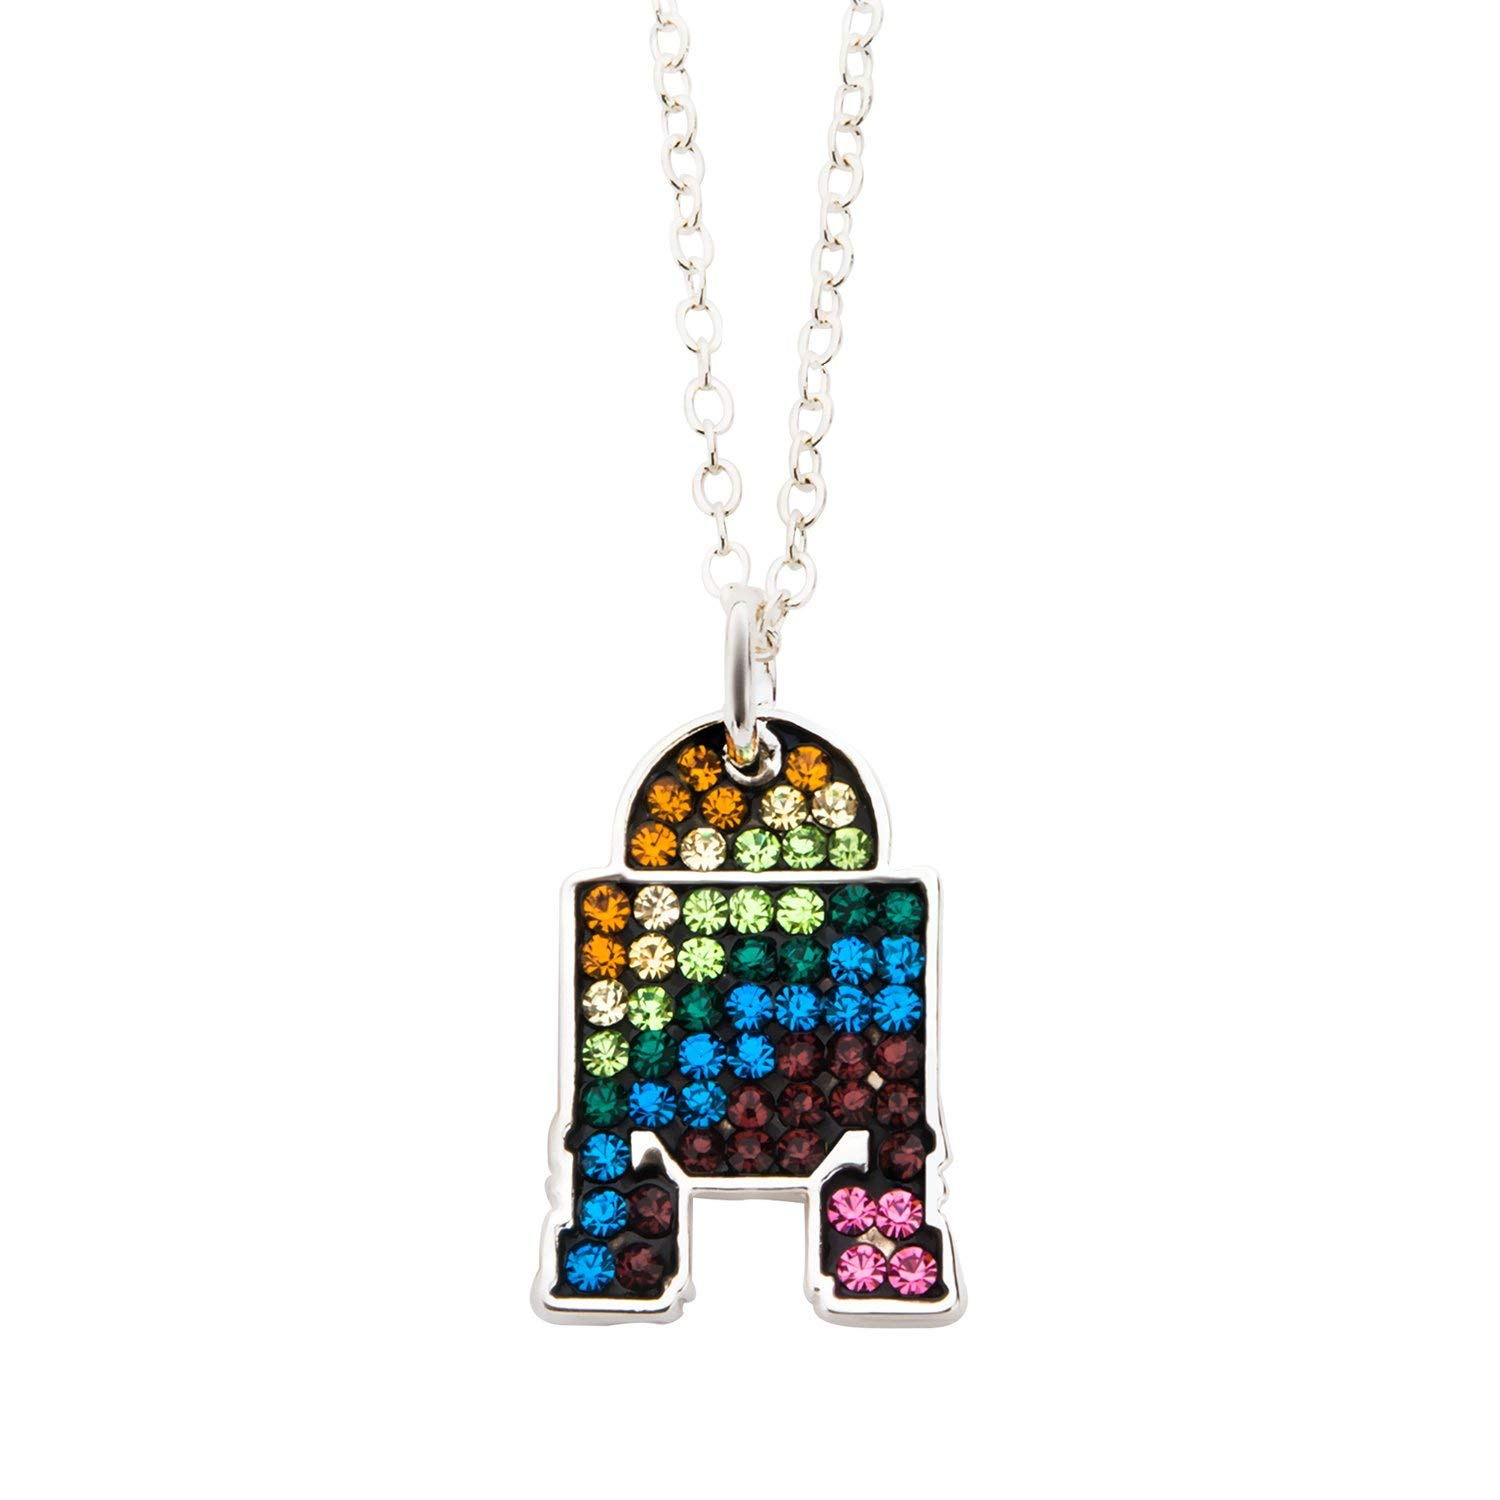 Body Vibe x Star Wars R2-D2 Rainbow Rhinestone Necklace on Amazon